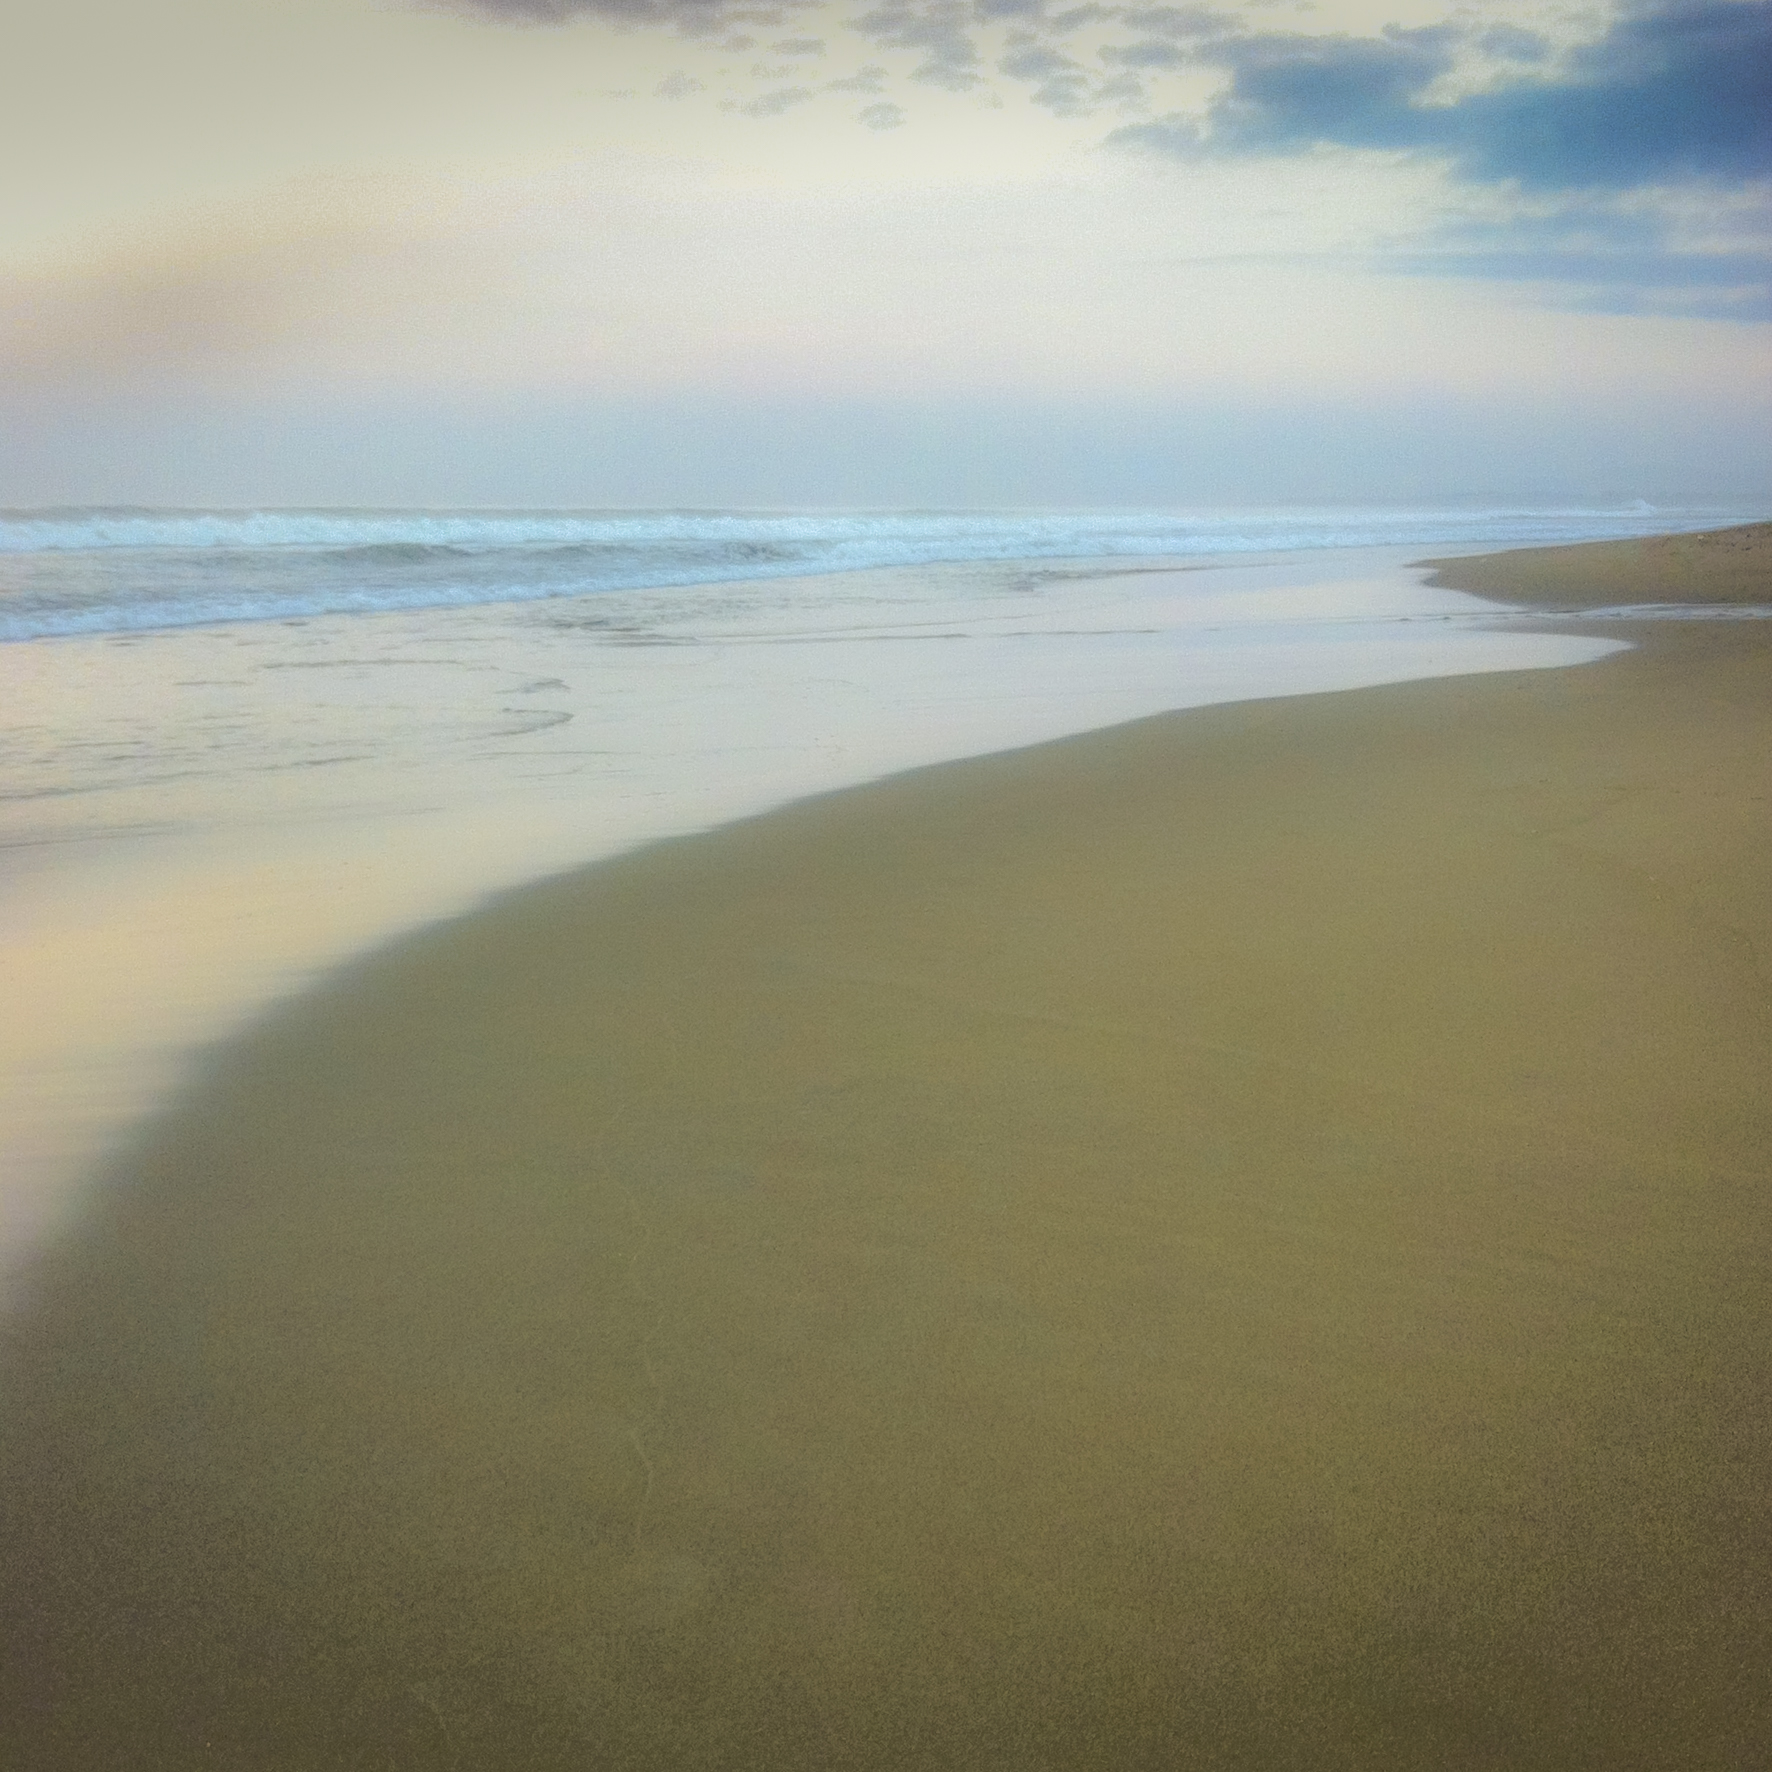 Tidal movement on the beach - ebb and flow of life.  Endings and new beginnings.